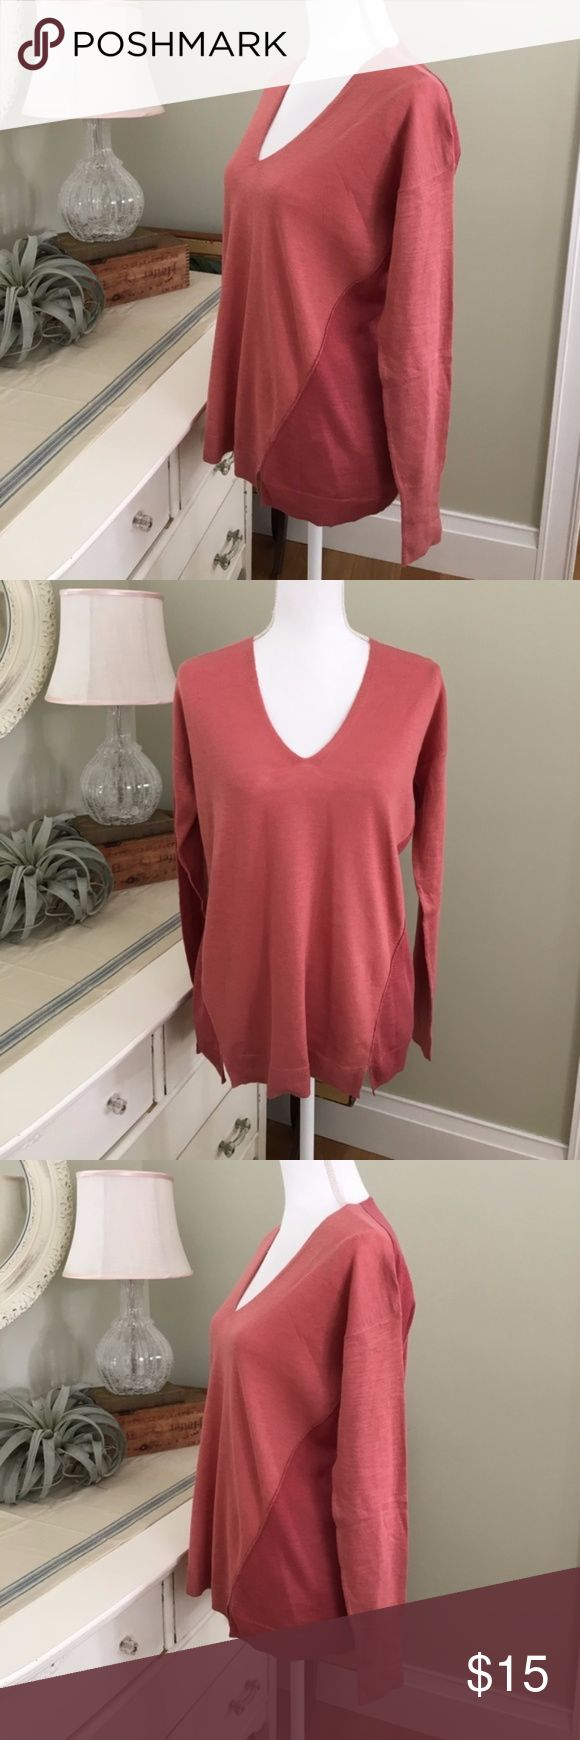 Rusty/Red Pink Two-Toned V Neck Top This comfortable two-toned top from Old Navy features long sleeves, a v neckline and solid angle pattern. Size: M.  #0099 Old Navy Tops